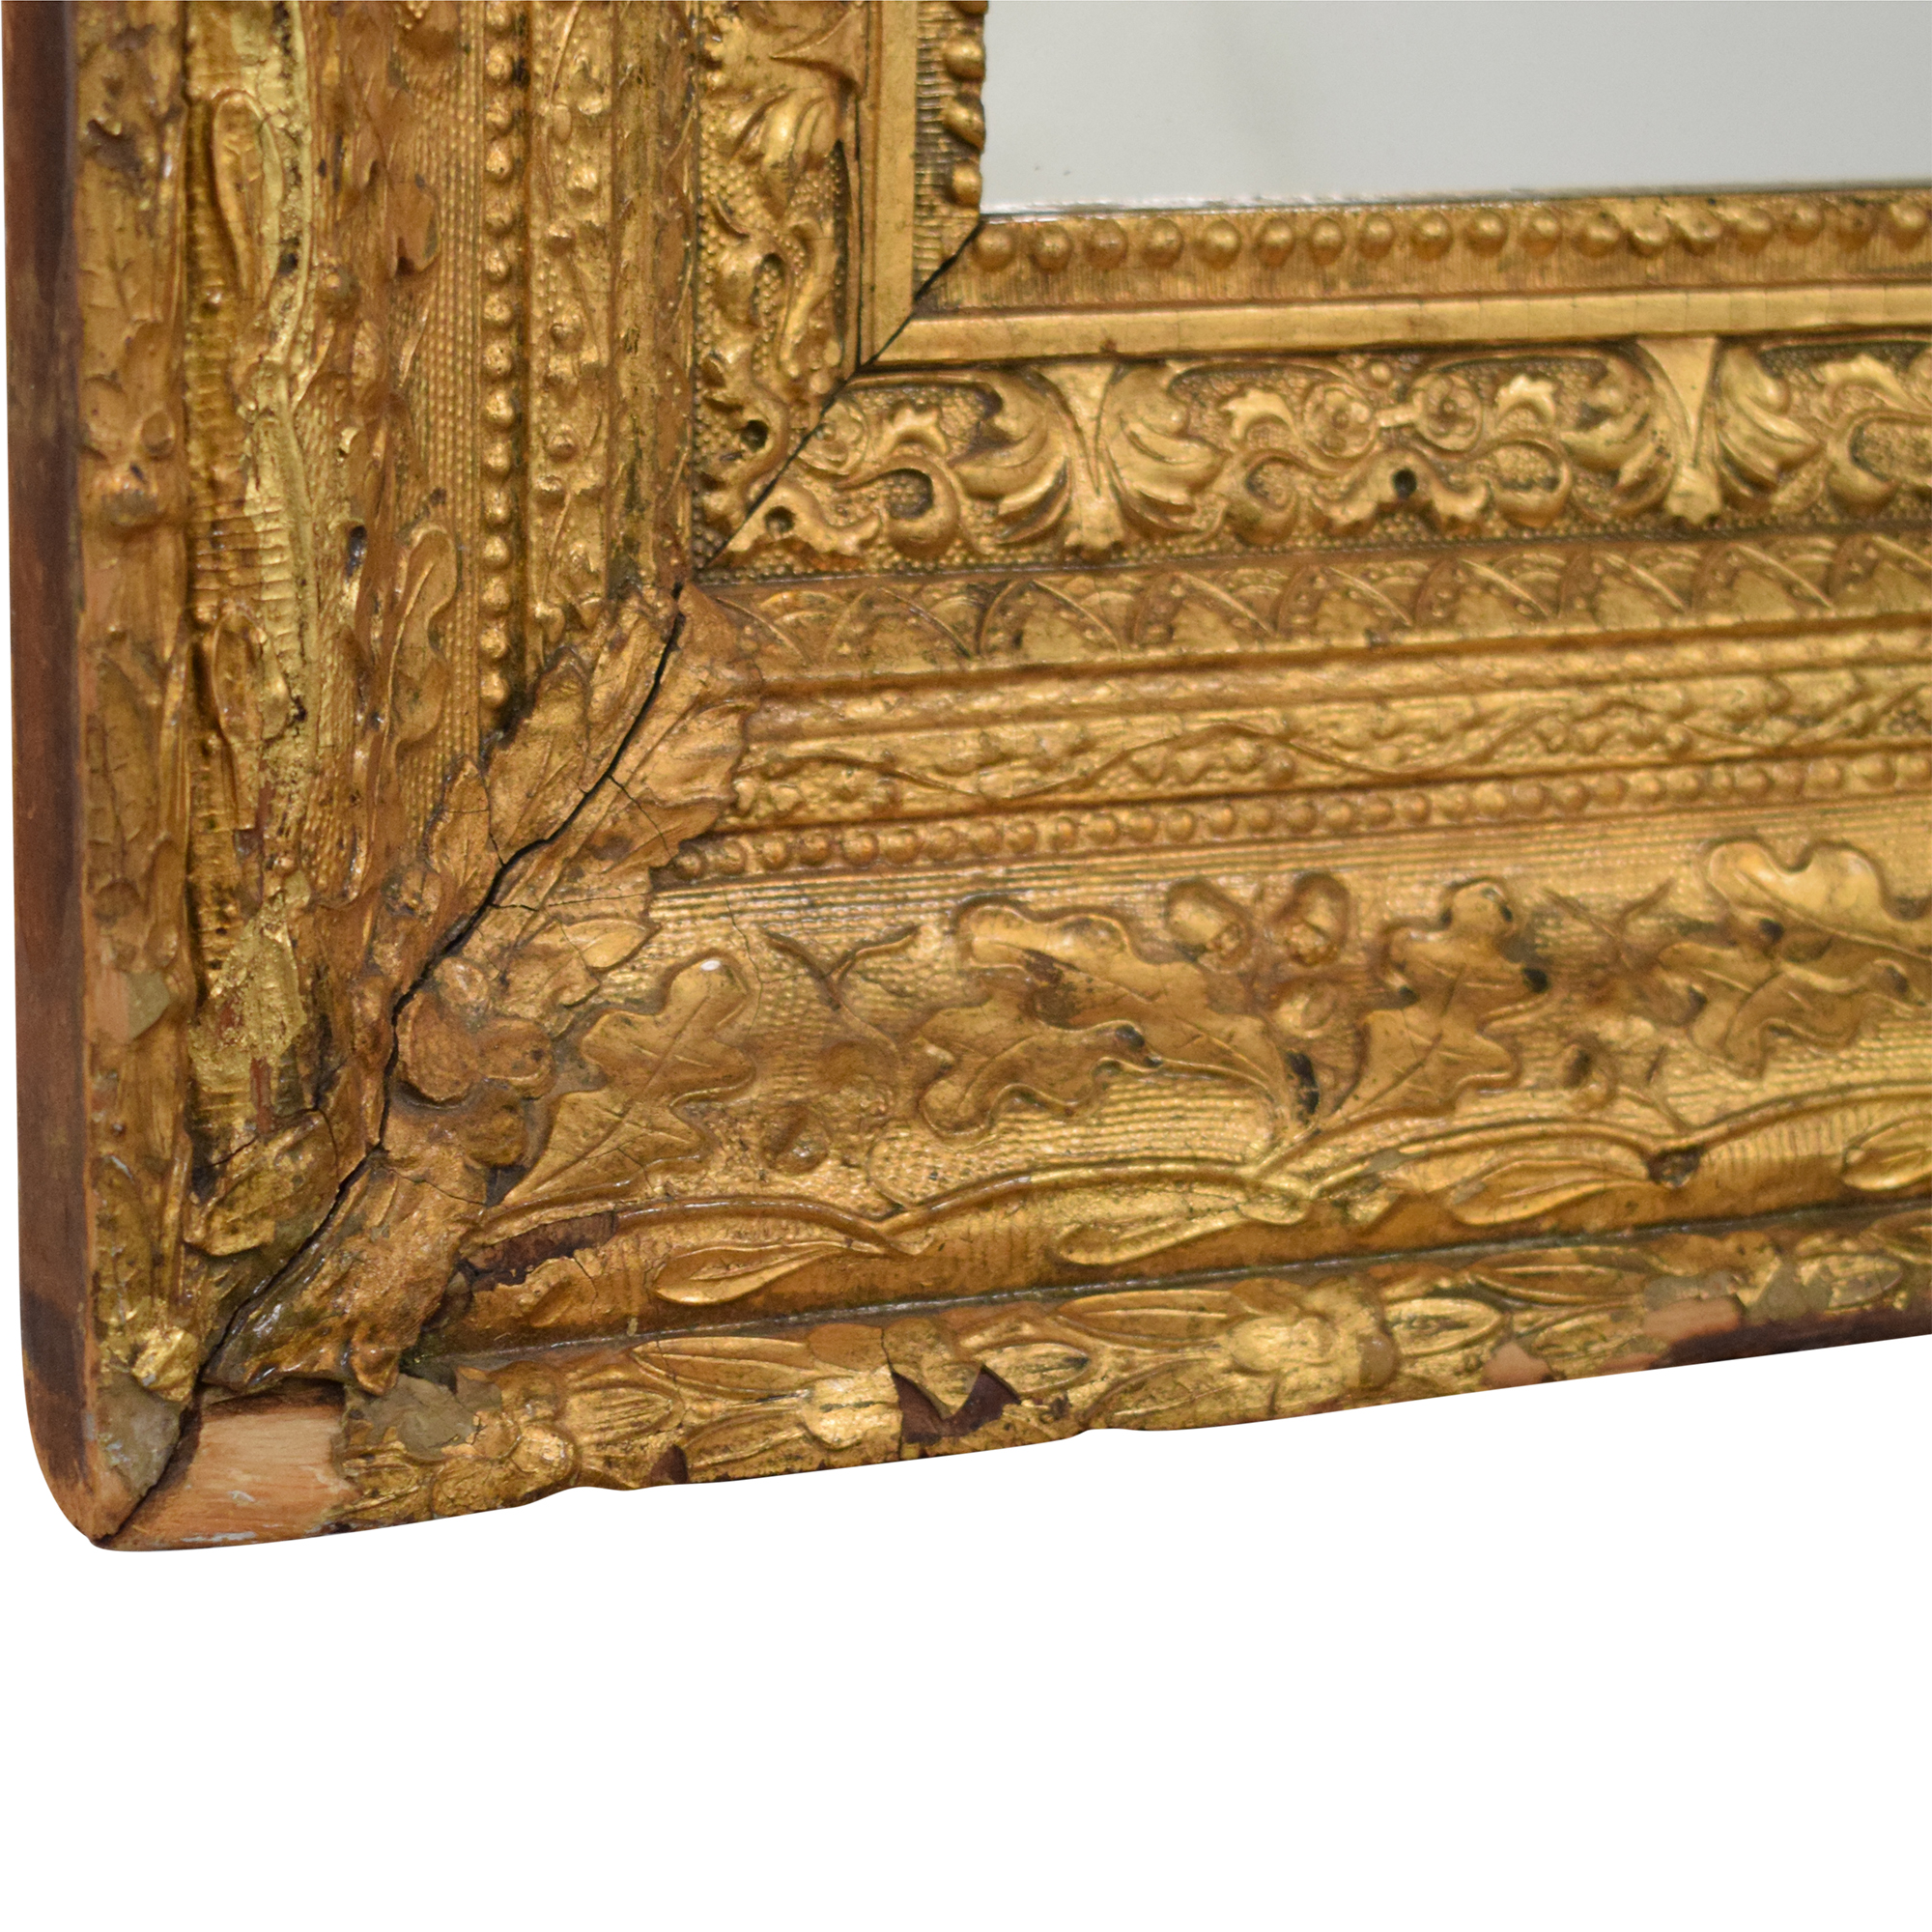 Antique Framed Decorative Wall Mirror sale